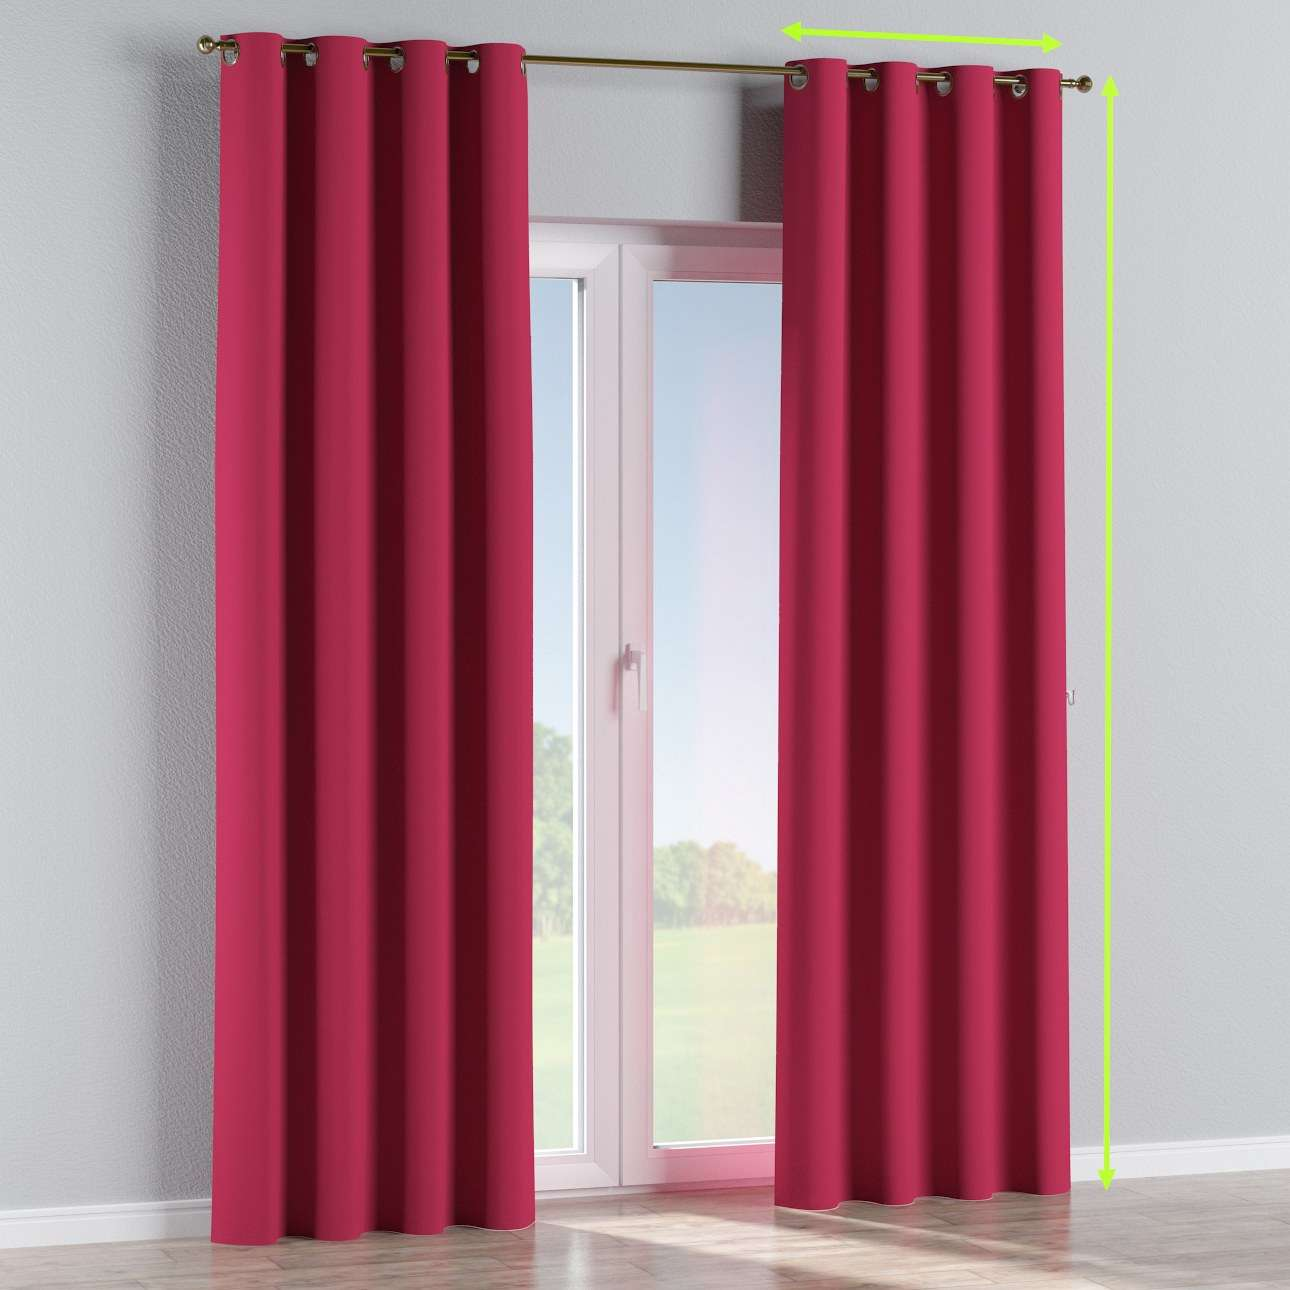 Blackout eyelet curtains in collection Blackout, fabric: 269-51